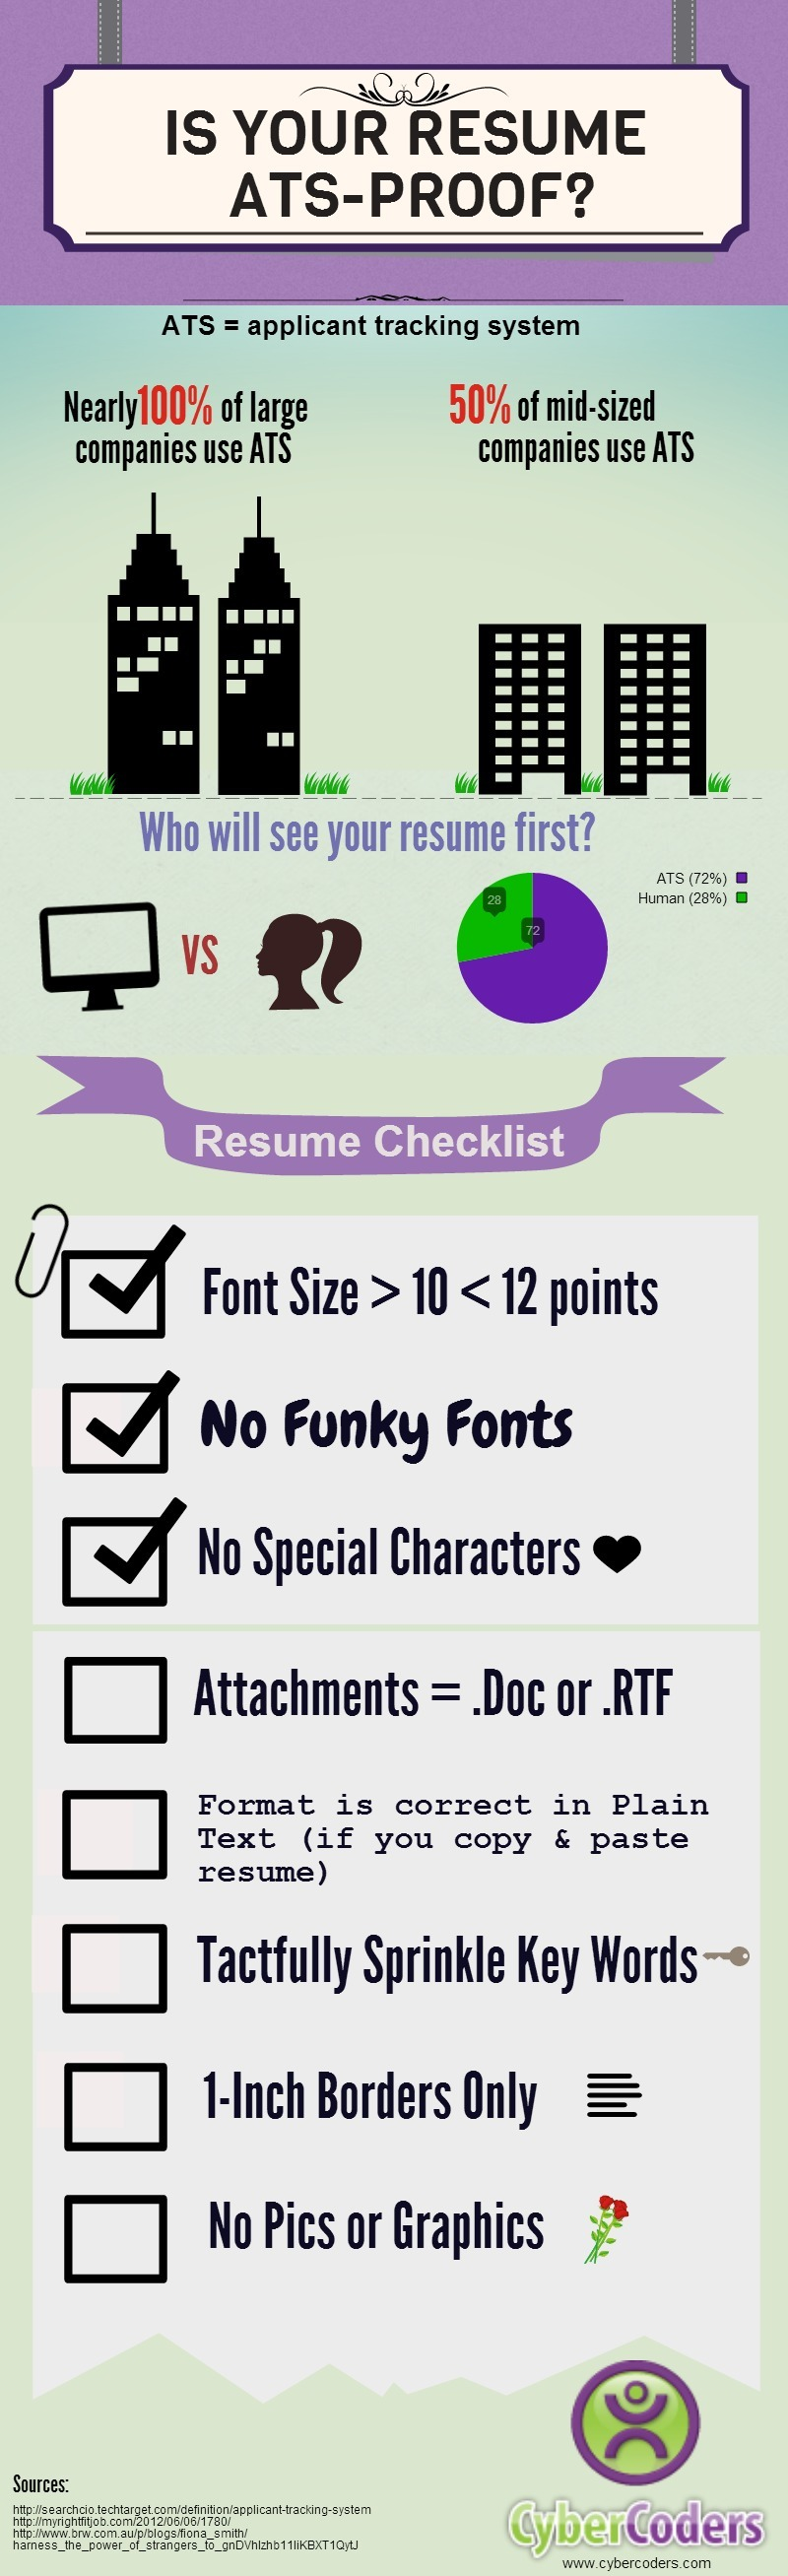 CyberCoders Infographic Is Your Resume ATS Proof